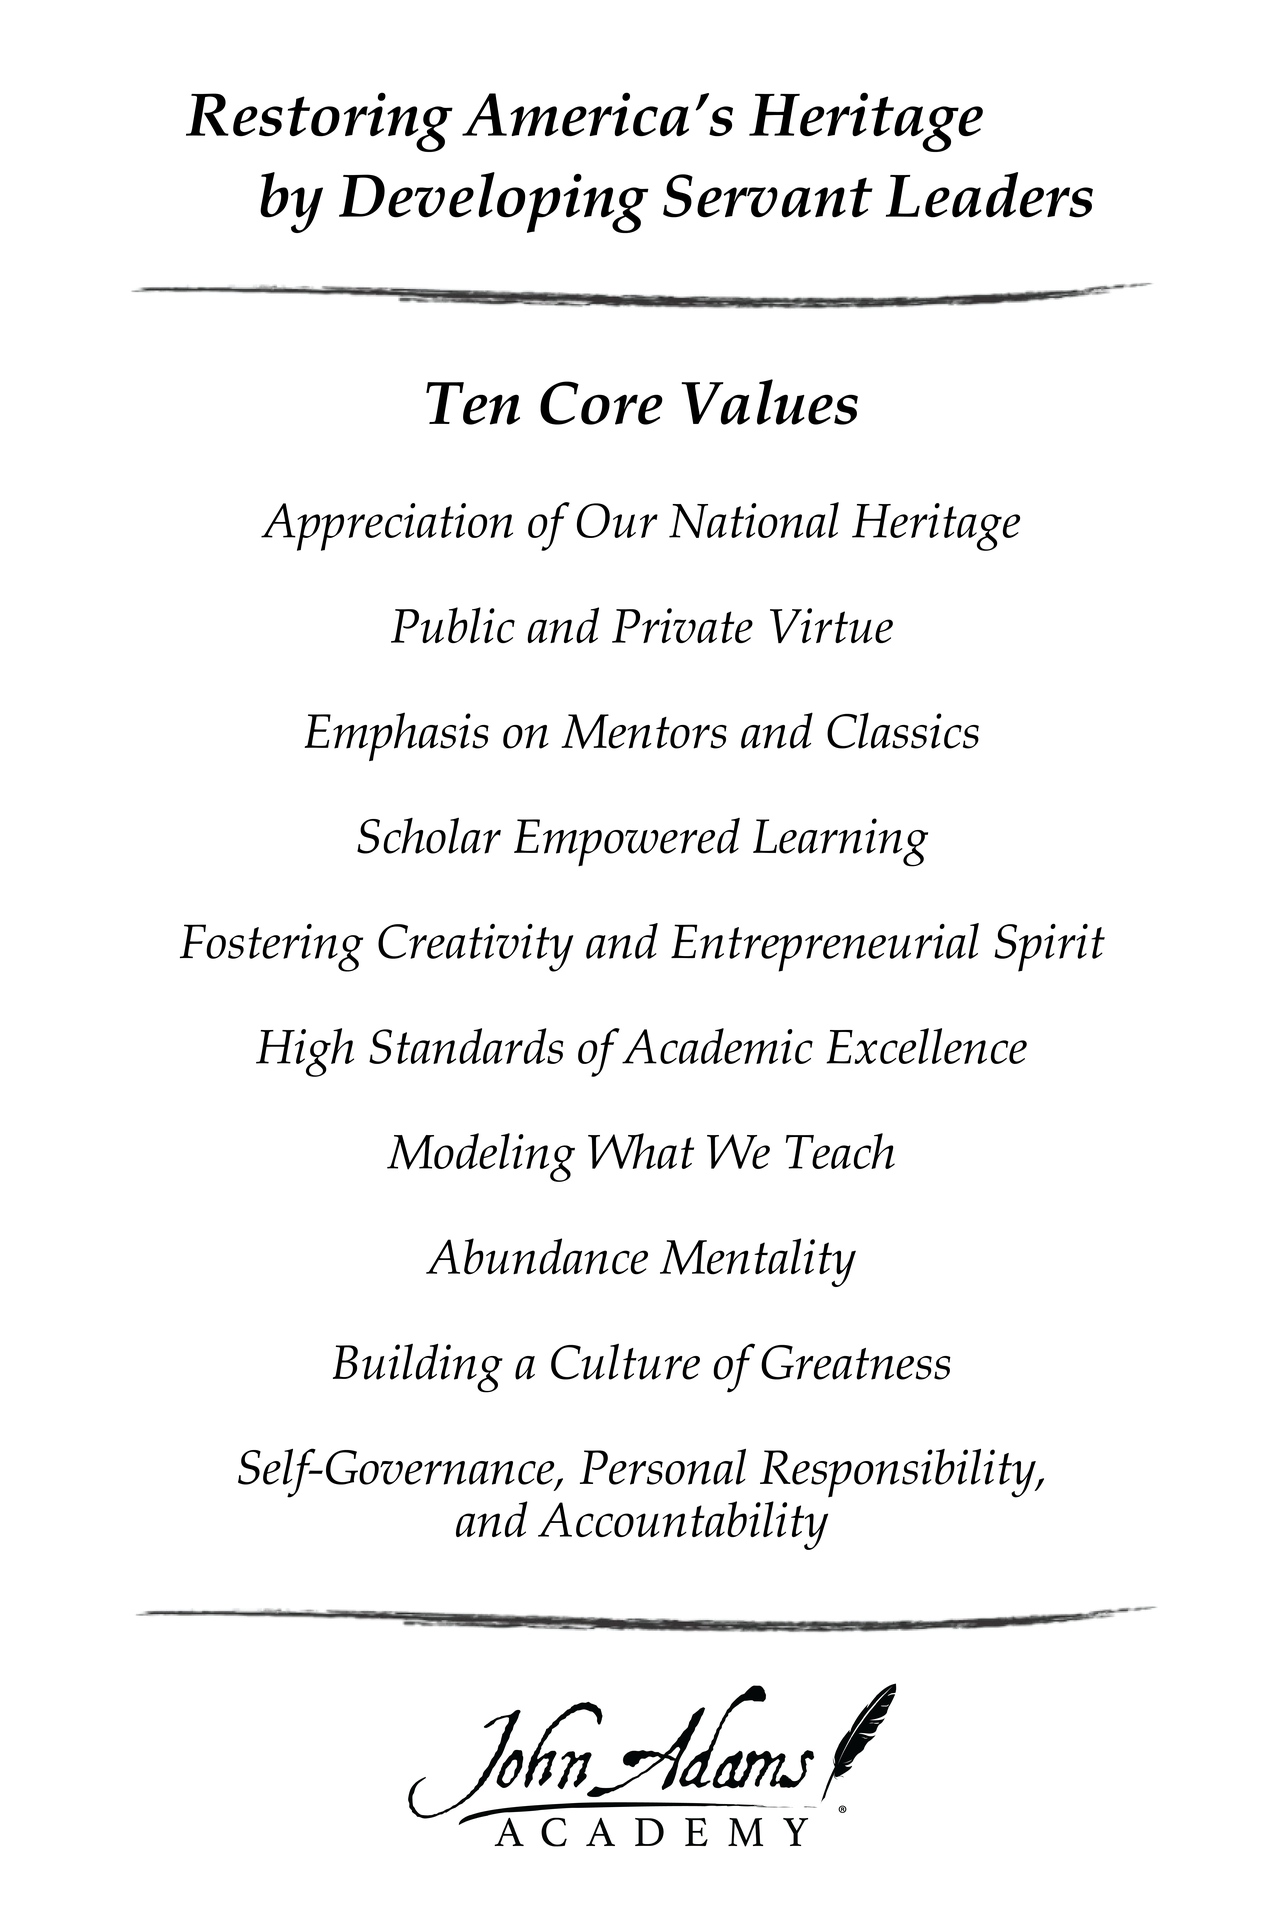 Ten Core Values